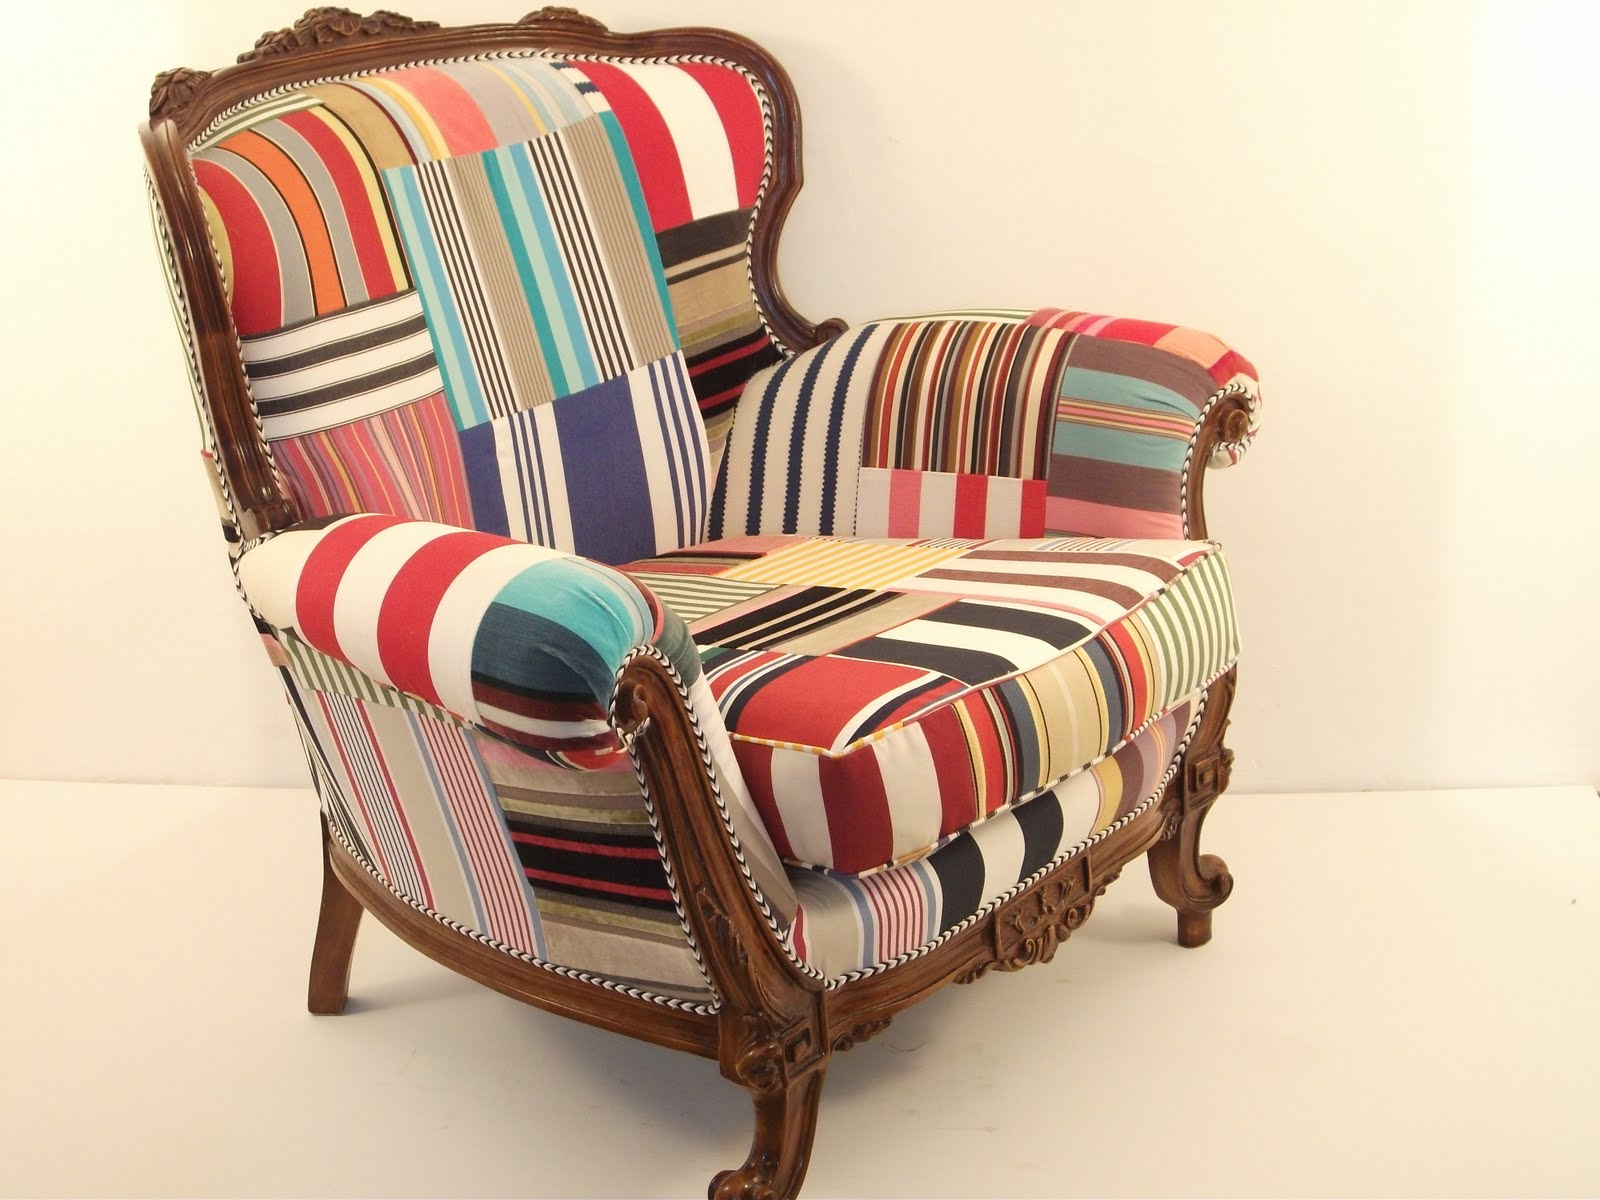 Google Chair Patchwork Upholstered Chair Inspirations On Pinterest